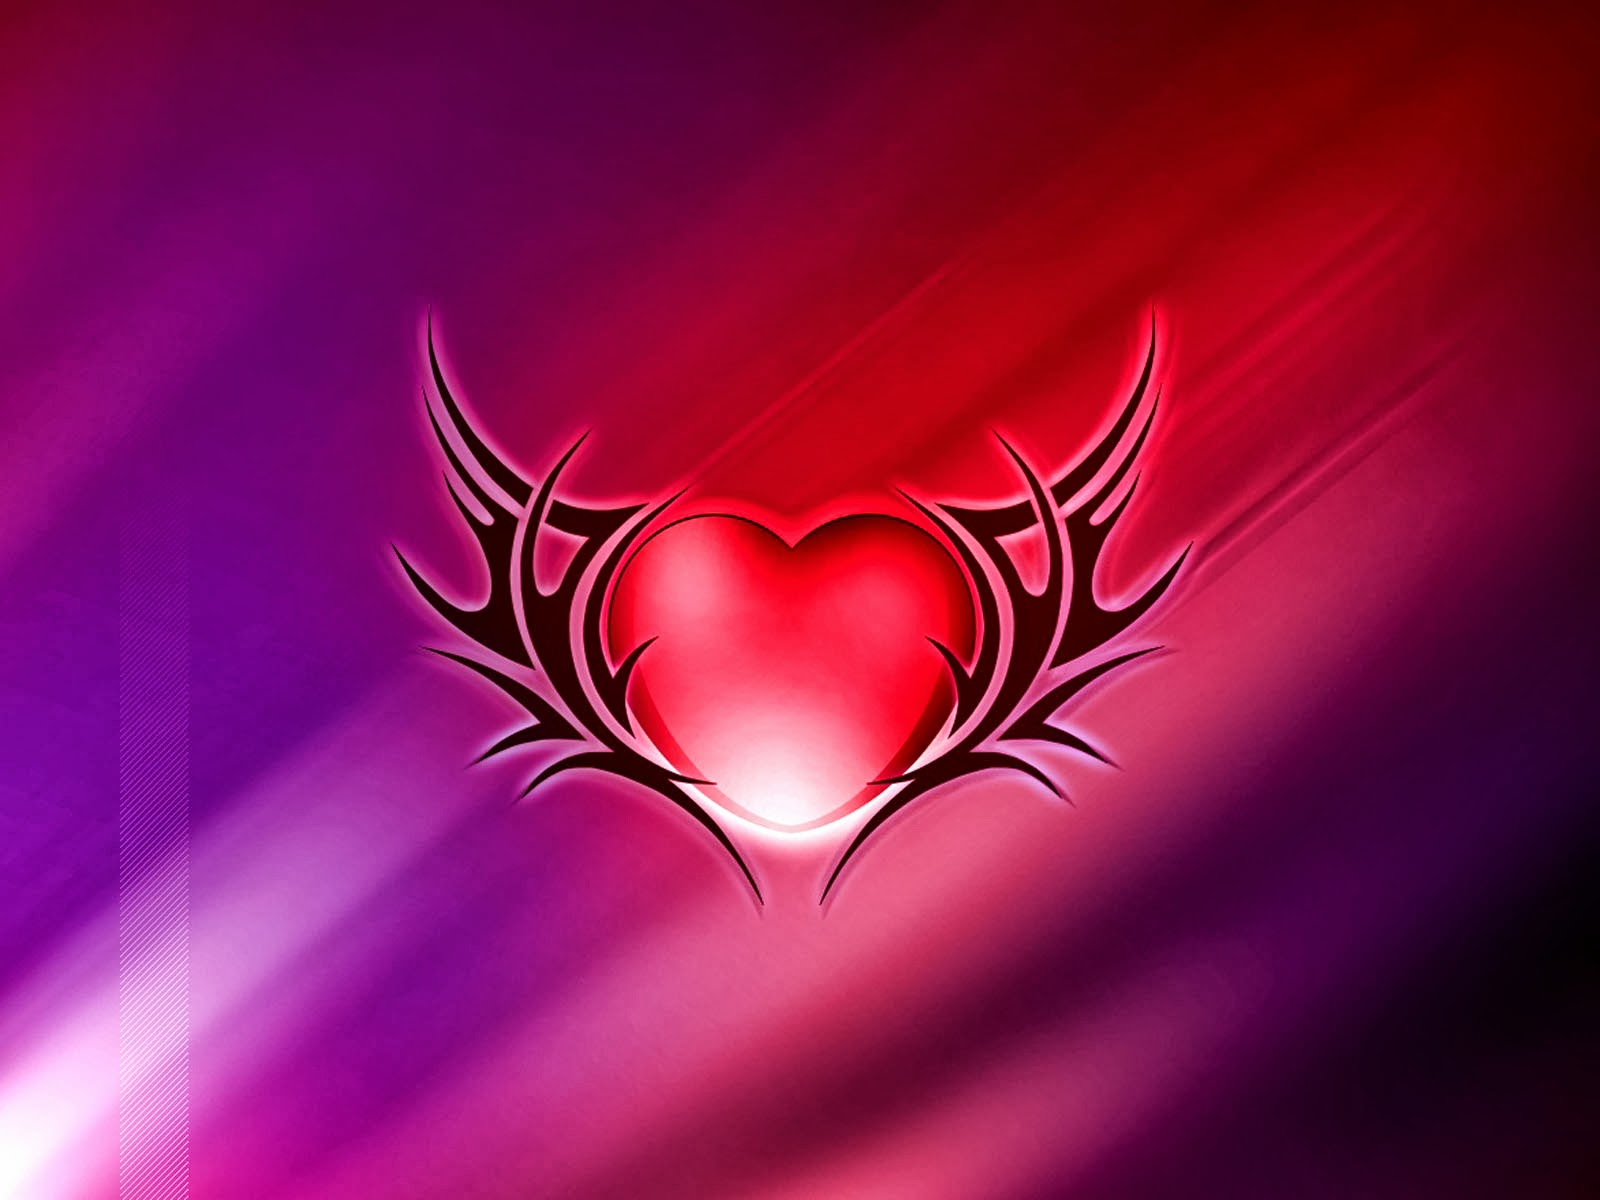 wallpapers: Love Desktop Wallpapers